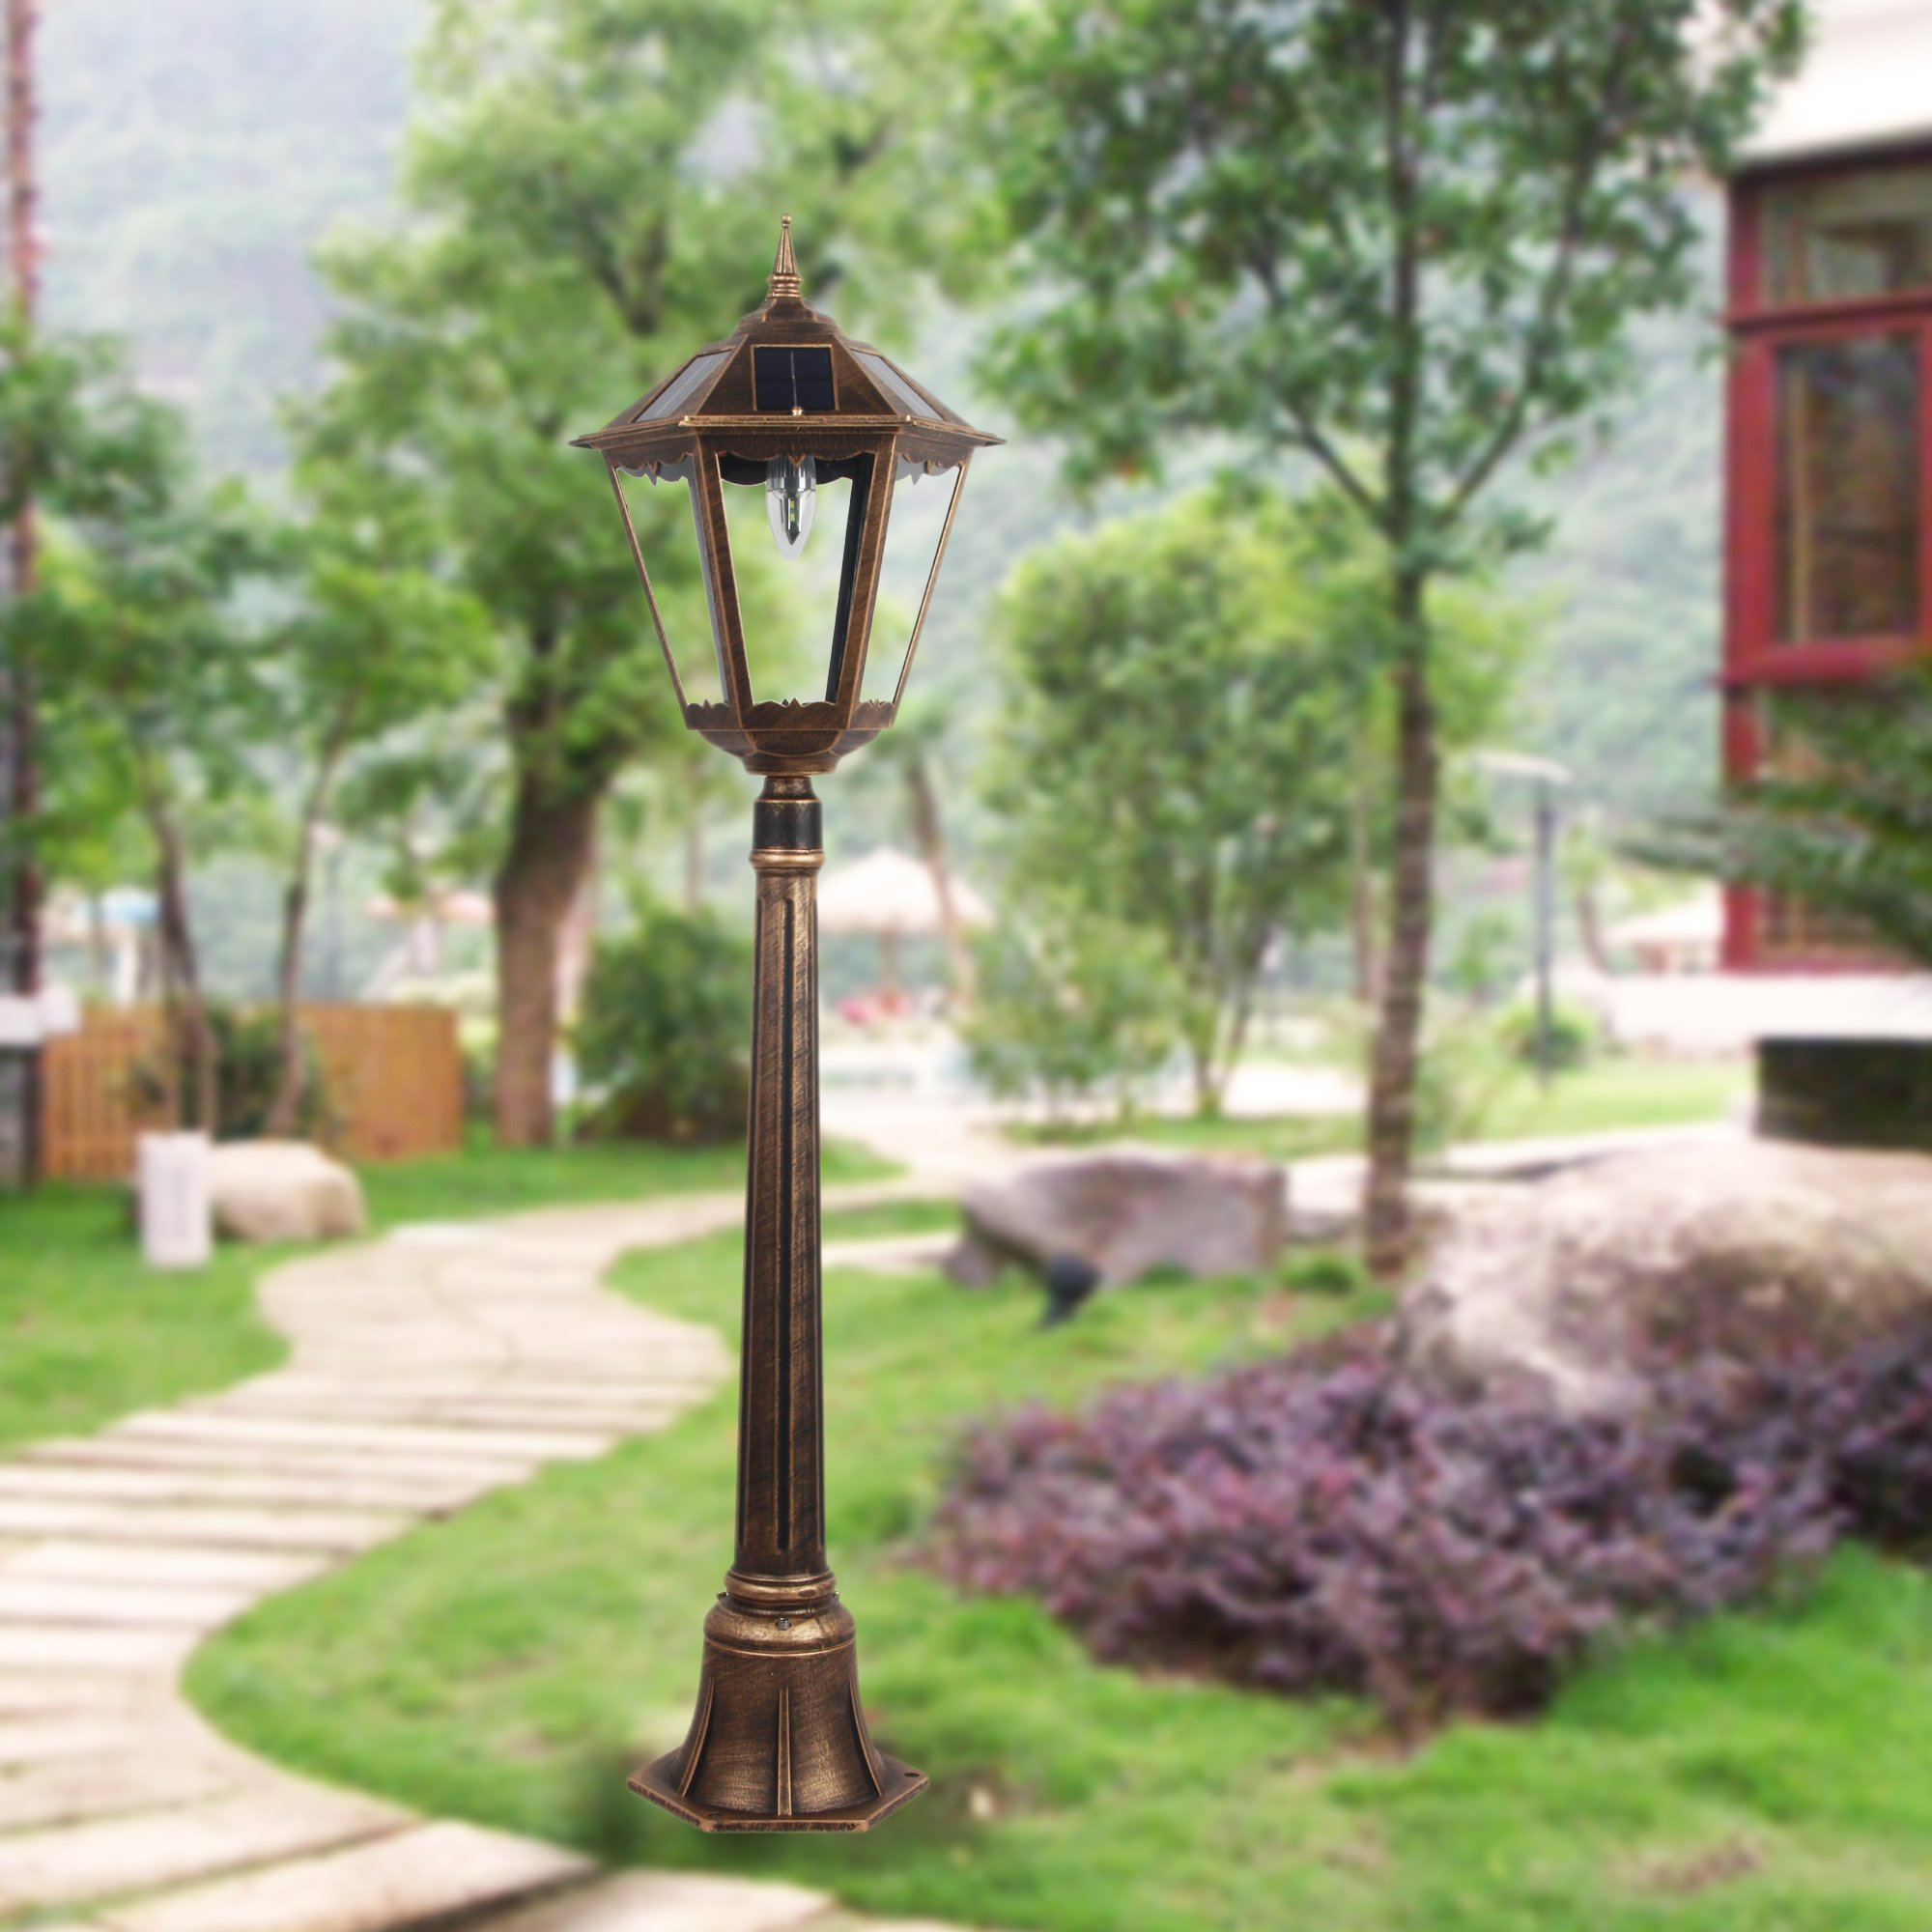 4 Foot Outdoor Solar Powered Lamp Post With